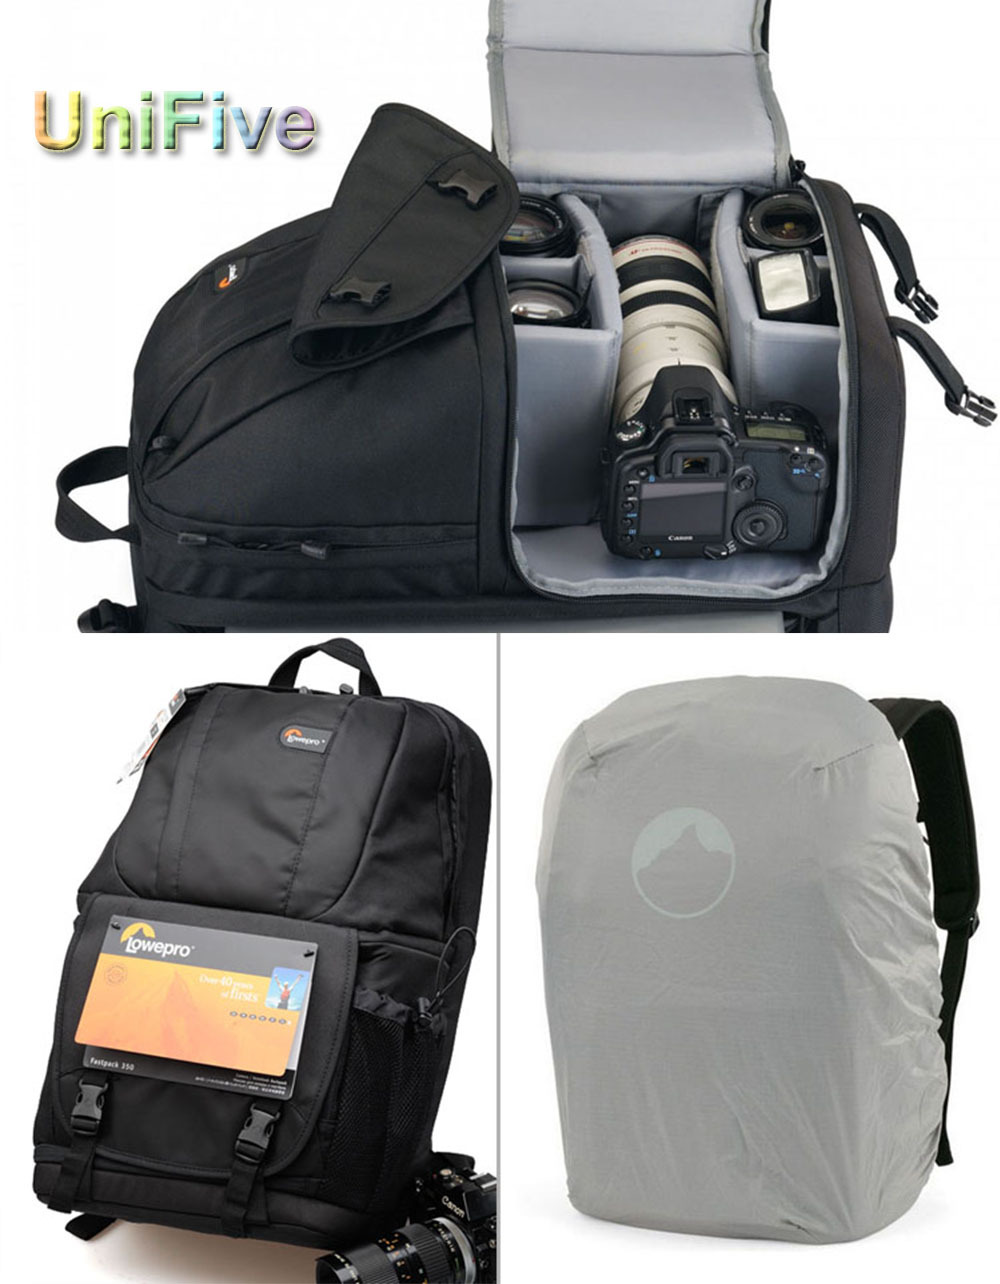 Сумка для видеокамеры Lowepro Fastpack 350 DSLR Canon Nikon Sony Fastpack 350 Black genuine lowepro dslr video fastpack 350 aw dvp 350aw slr camera bag shoulder bag 17 laptop